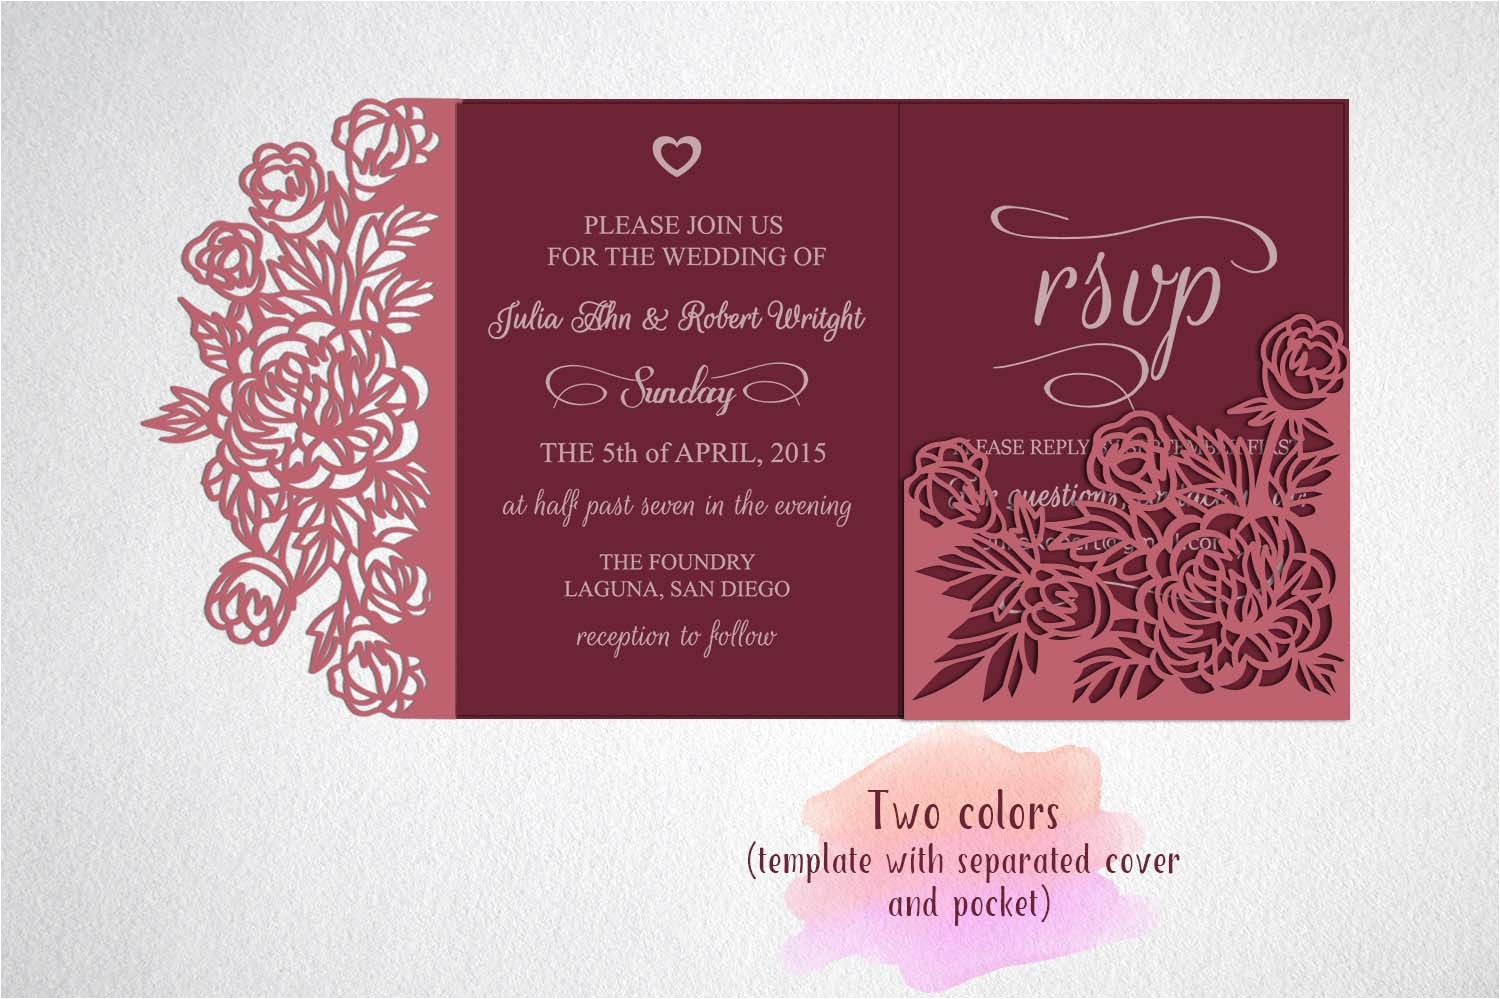 78759 tri fold wedding invitation svg cricut laser cut template card svg peonies roses cameo silhouette pocket quinceanera templates